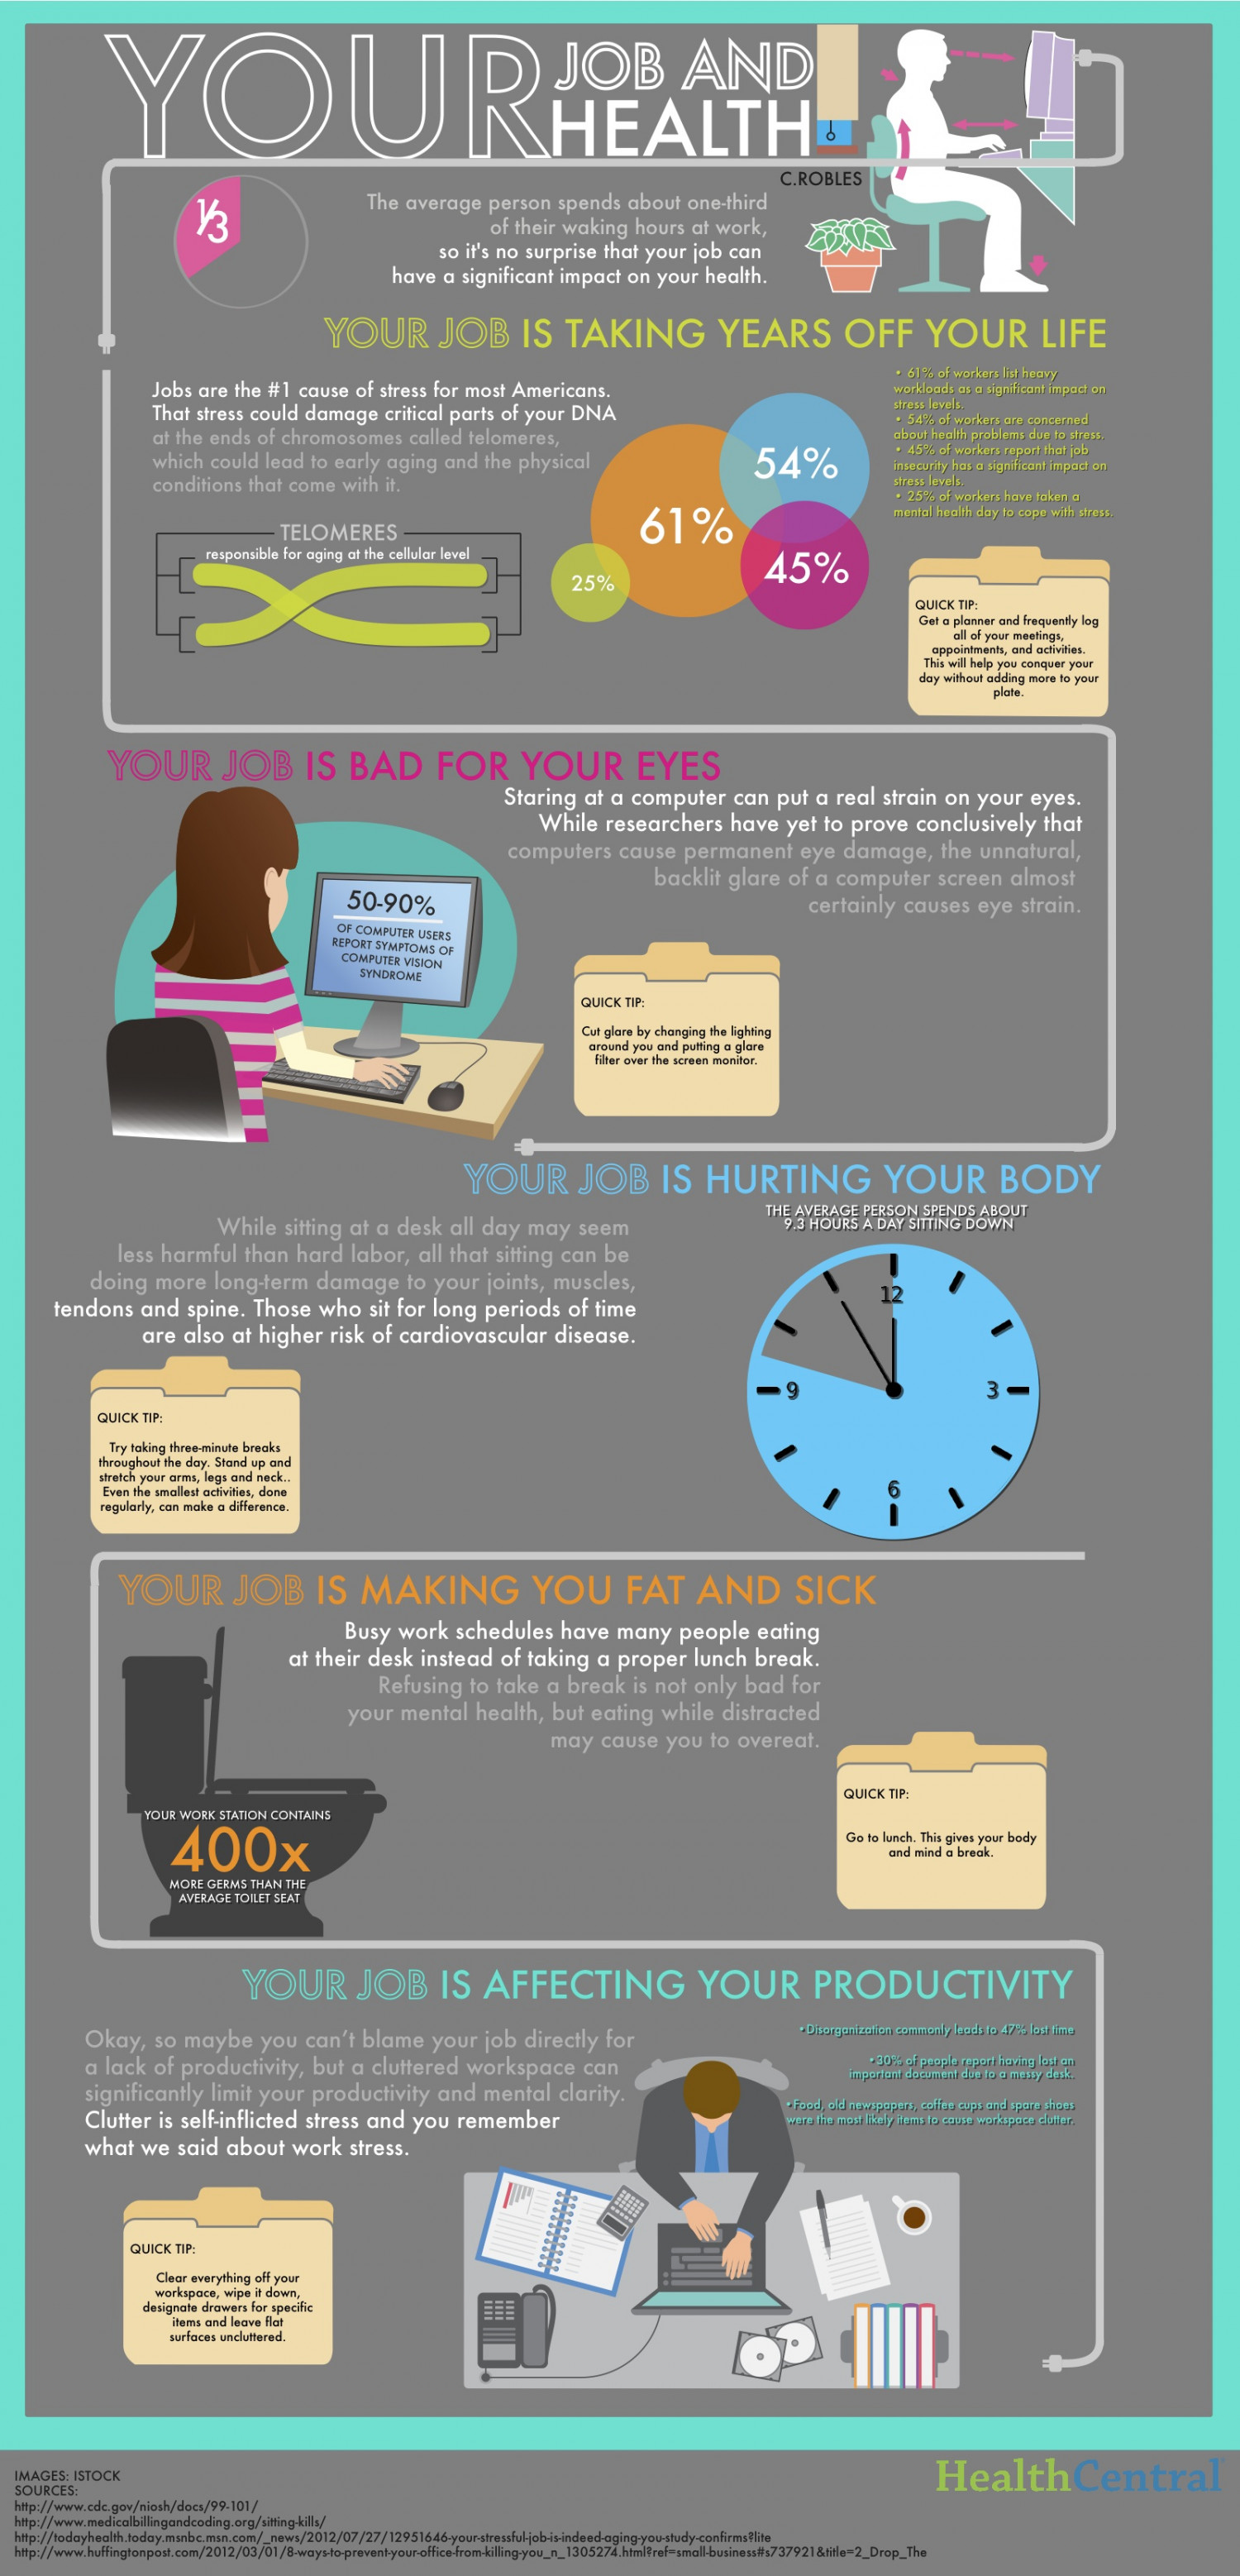 Your Job and Your Health Infographic